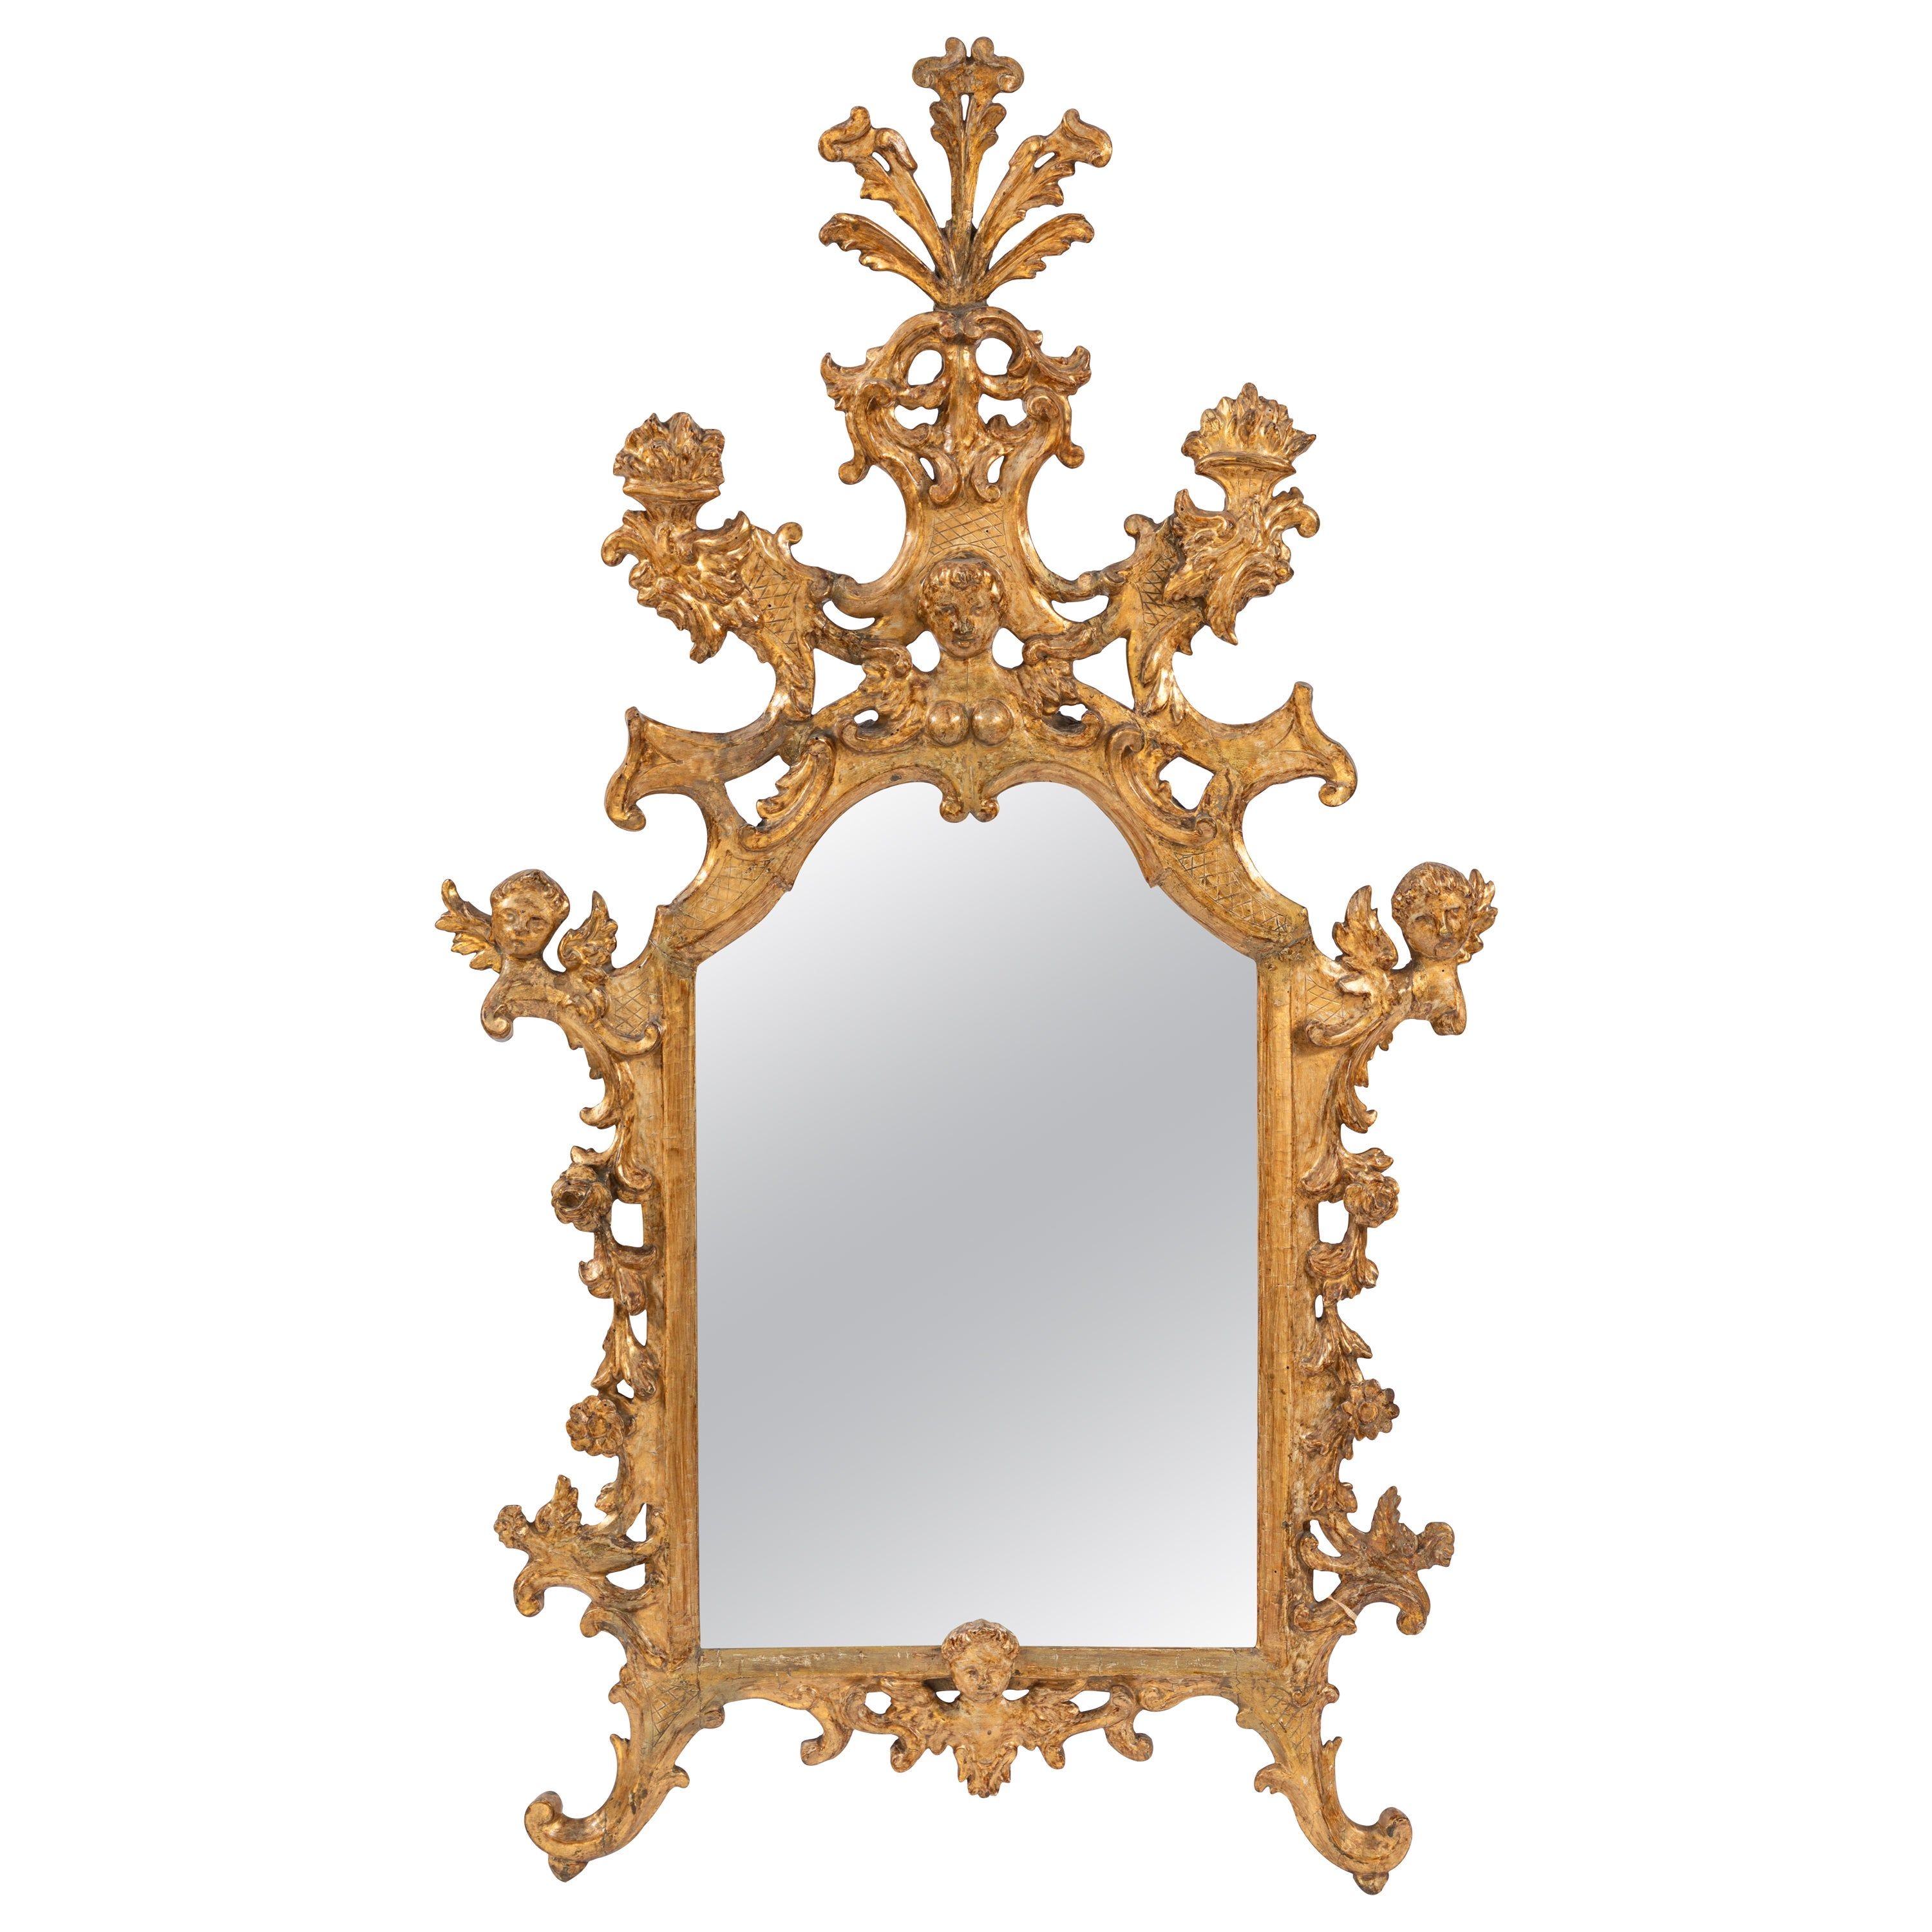 18th Century Venetian Carved Giltwood Mirror